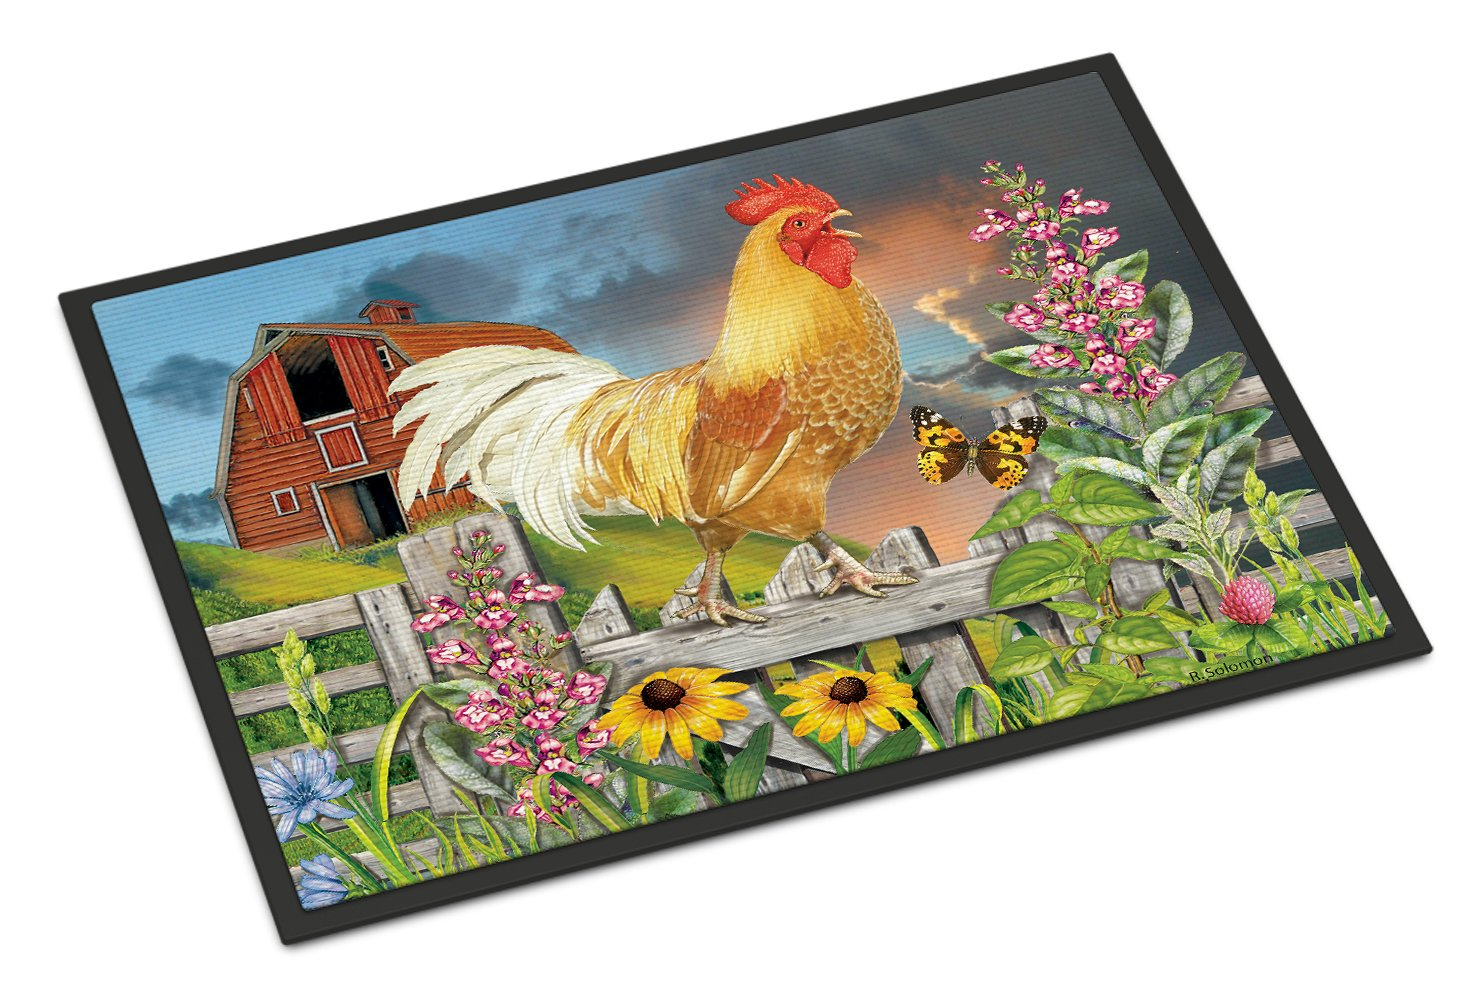 Yellow Rooster Greeting the Day Indoor or Outdoor Mat 24x36 PRS4024JMAT by Caroline's Treasures